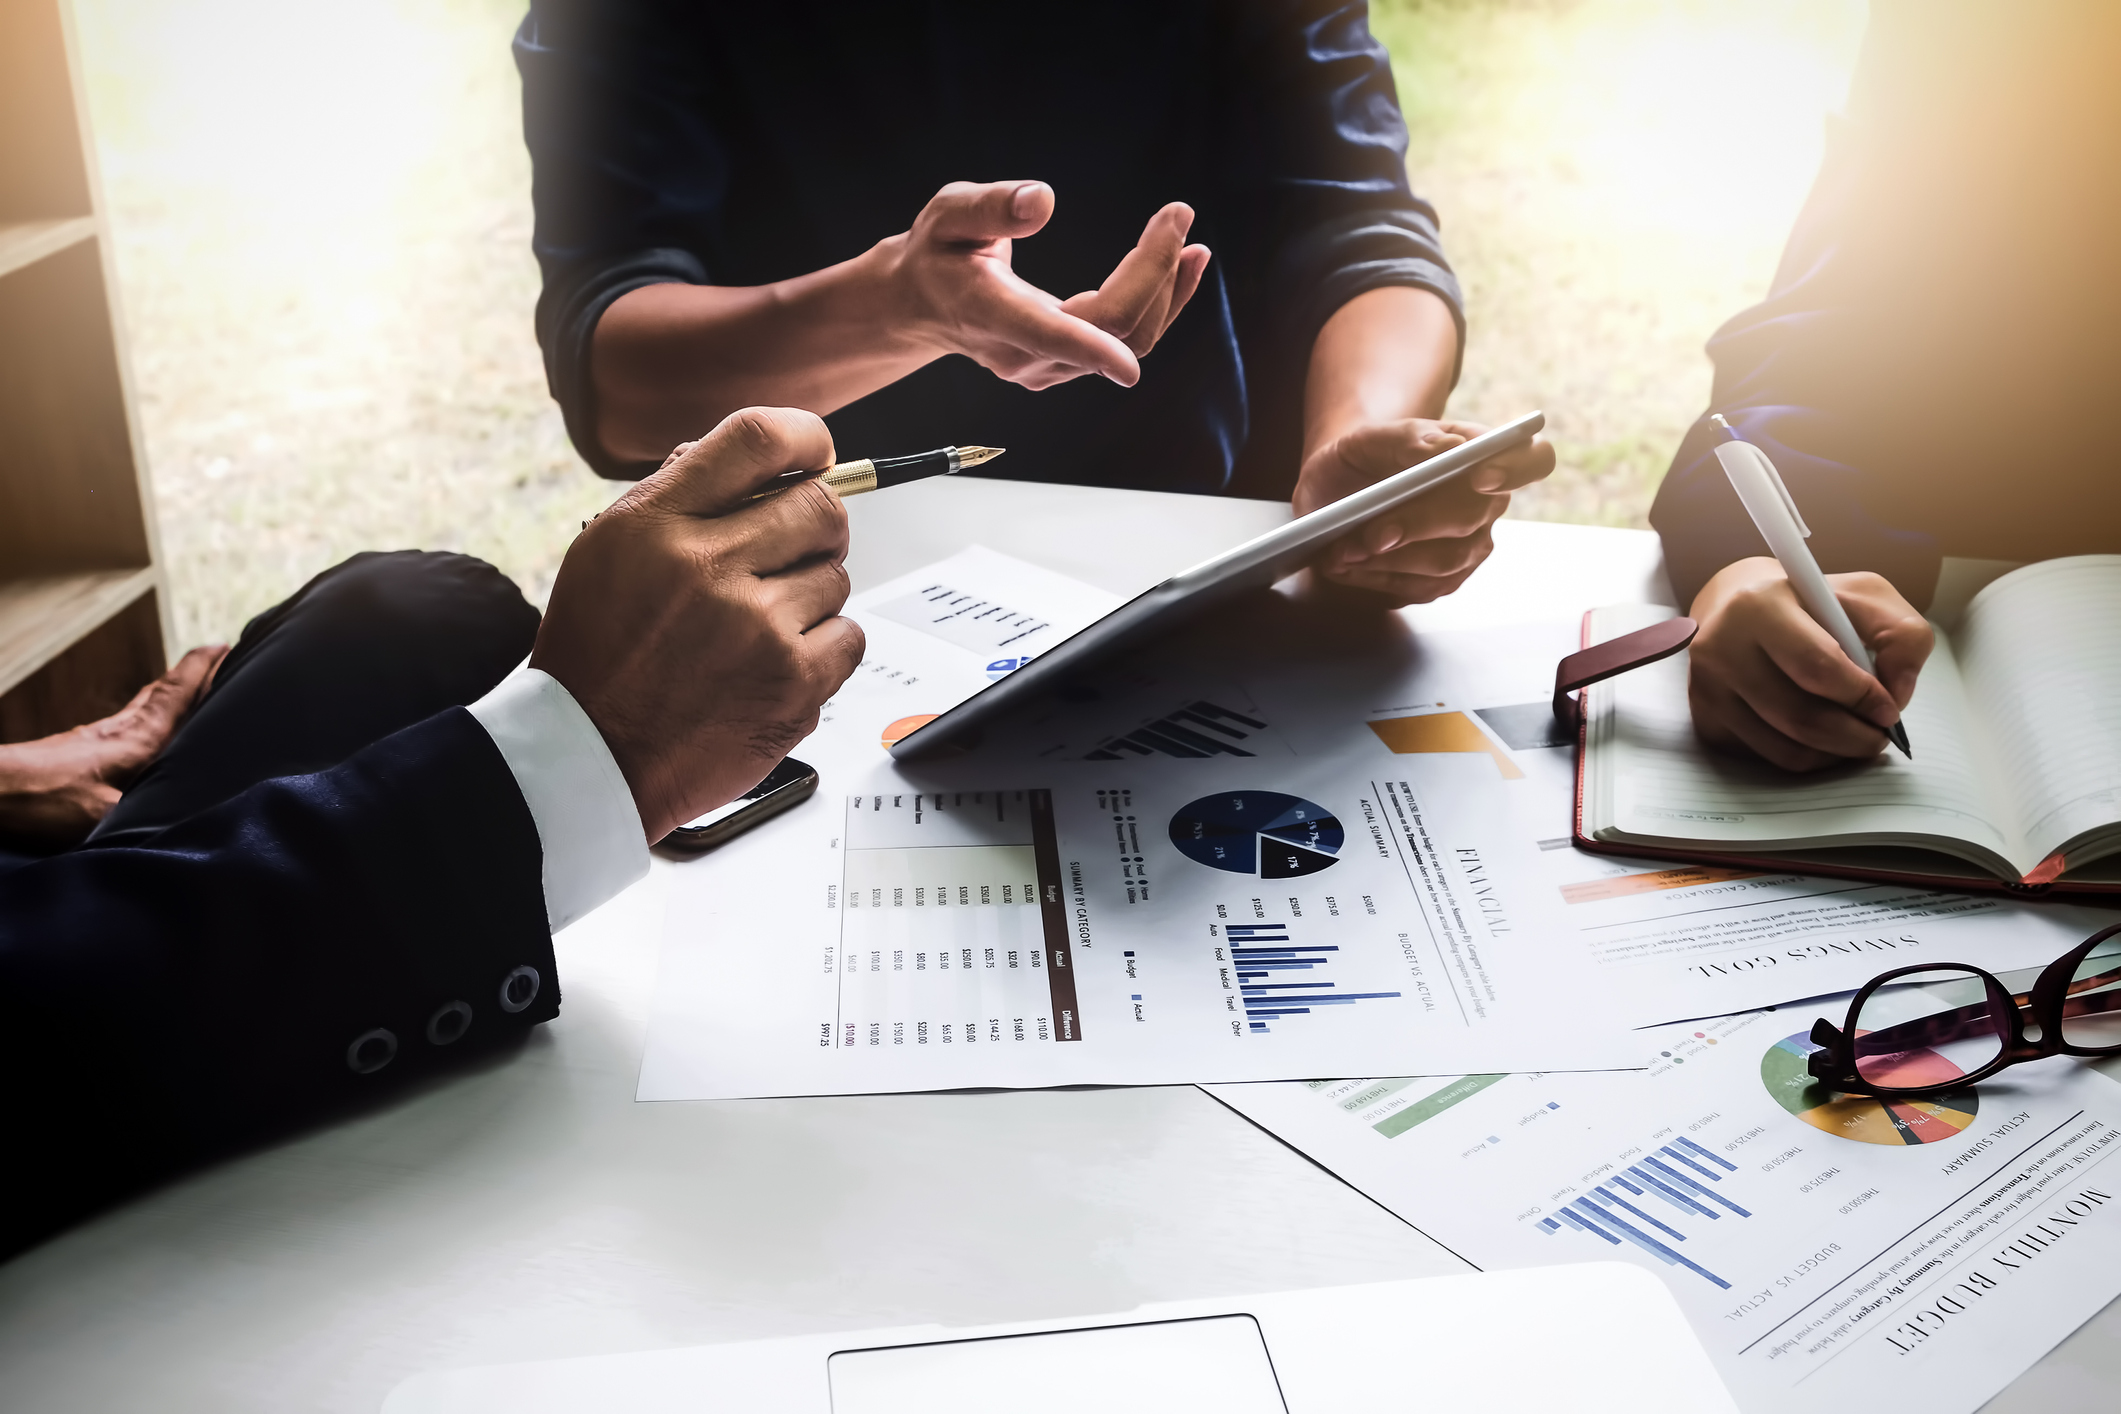 Internal Audits - Outsource your internal audits to an expert! Our consultants have extensive industry experience. They understand how to help your organization through the audit process because they conduct 3rd party audits for some of the largest Registrars.